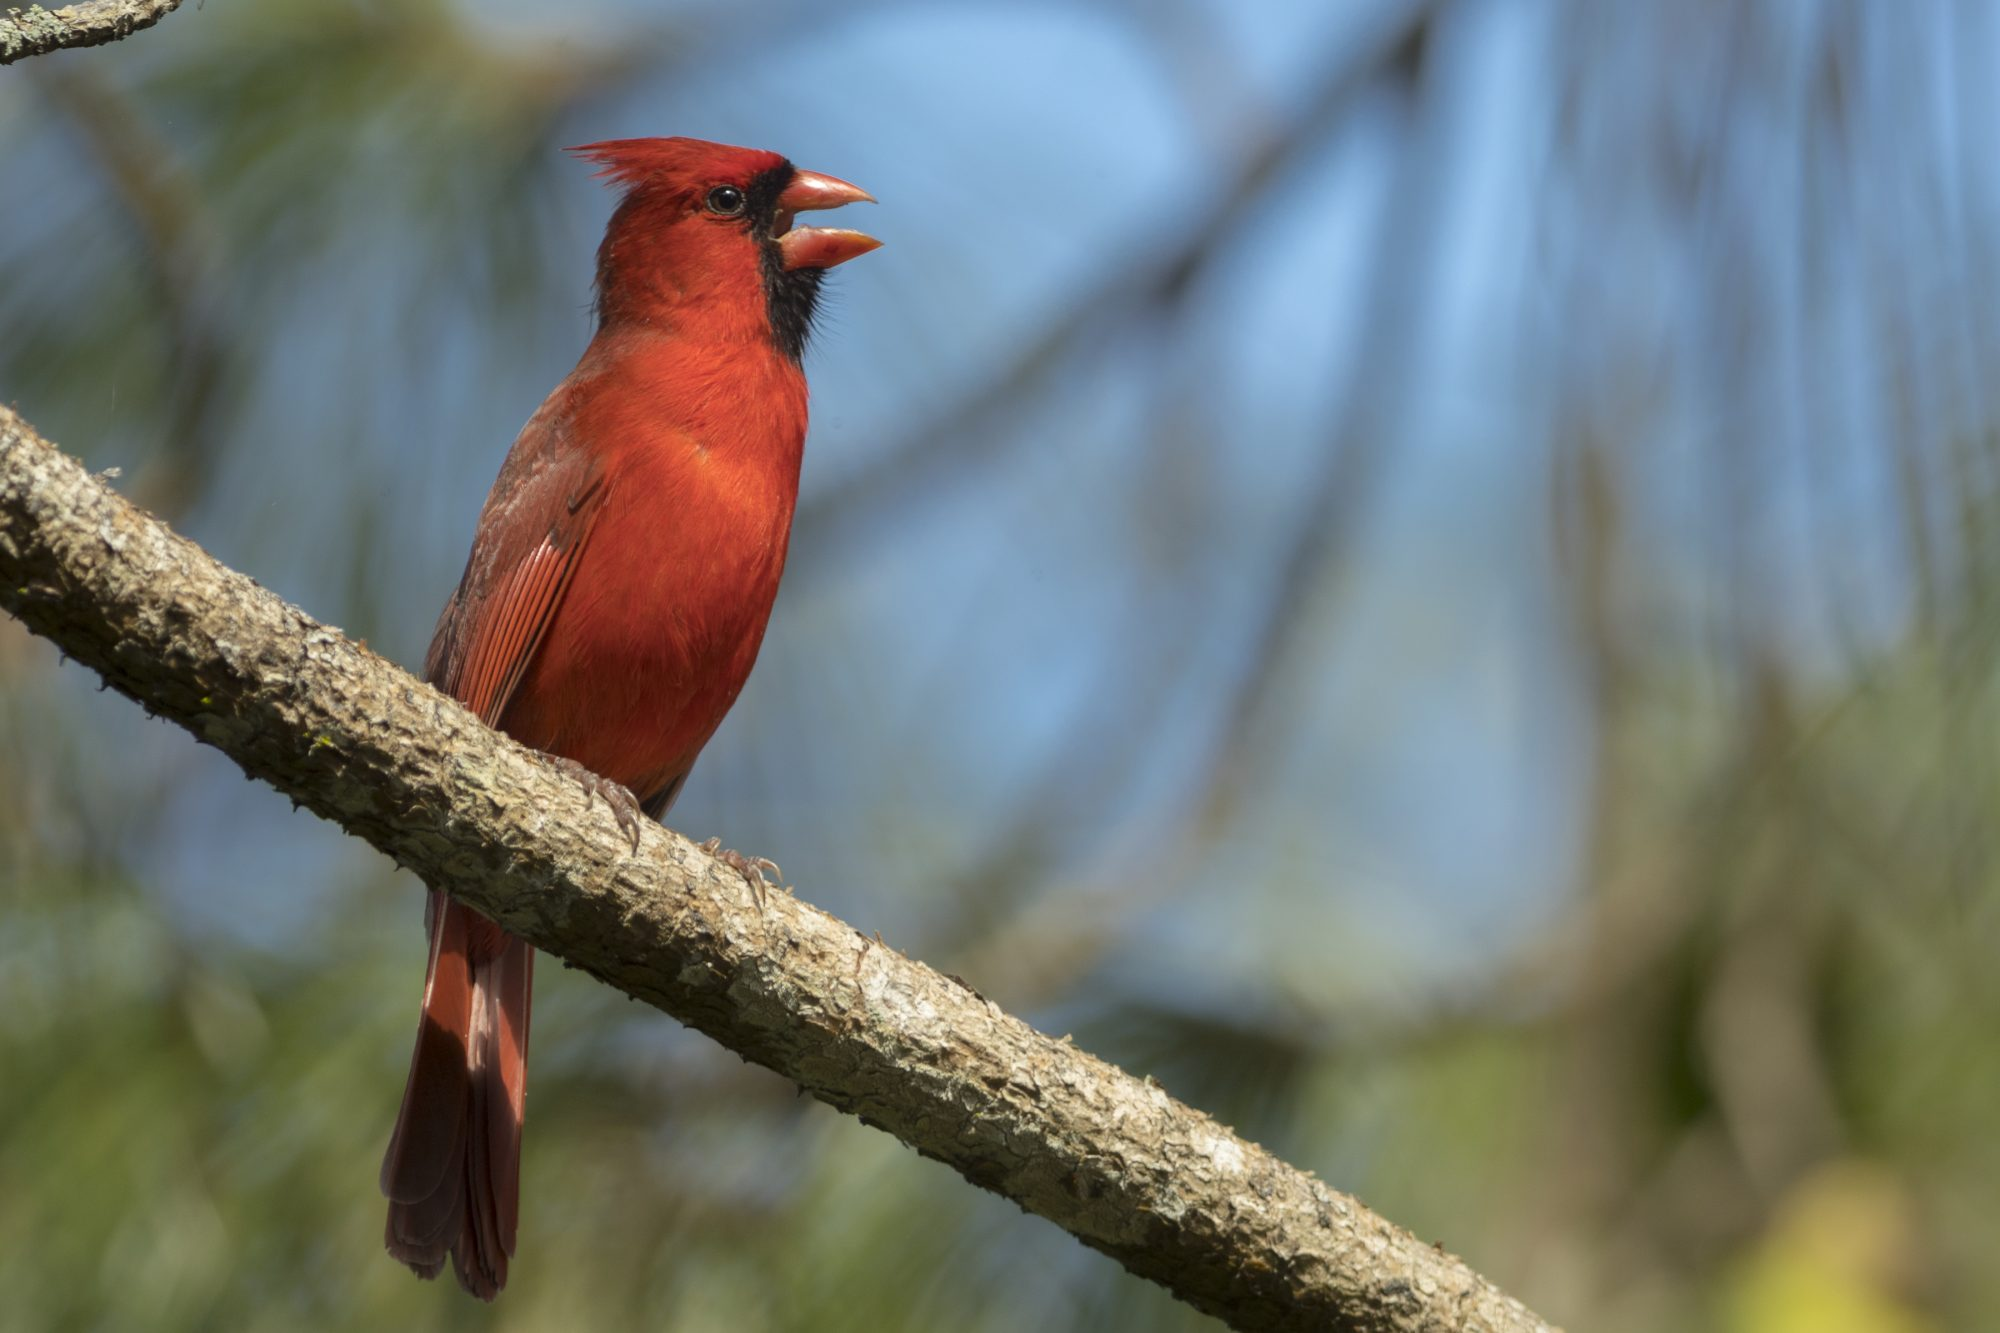 Northern Cardinal male singing song